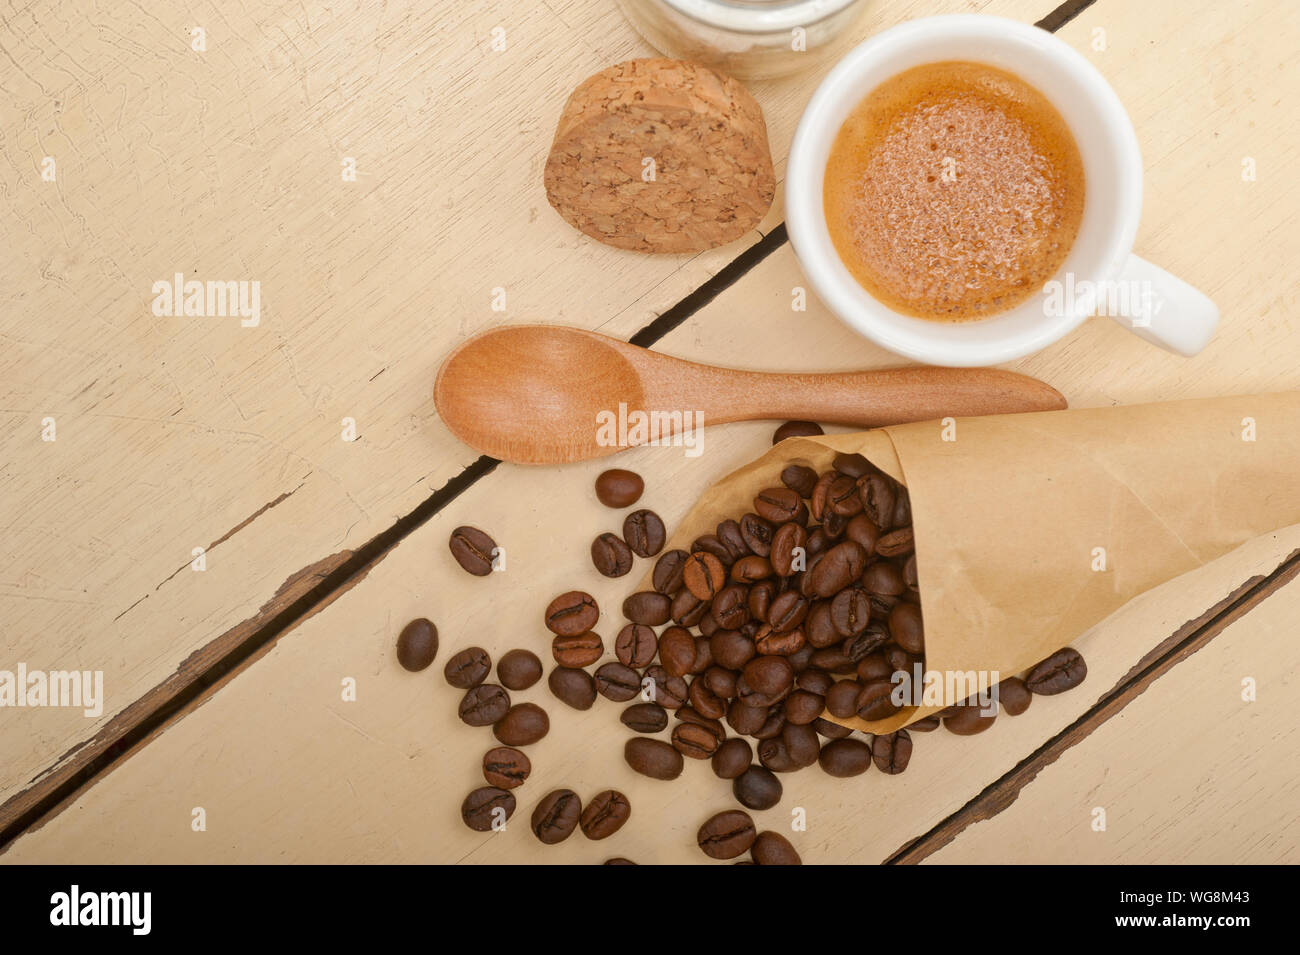 Directly Above Of Coffee With Ingredients On Table Stock Photo